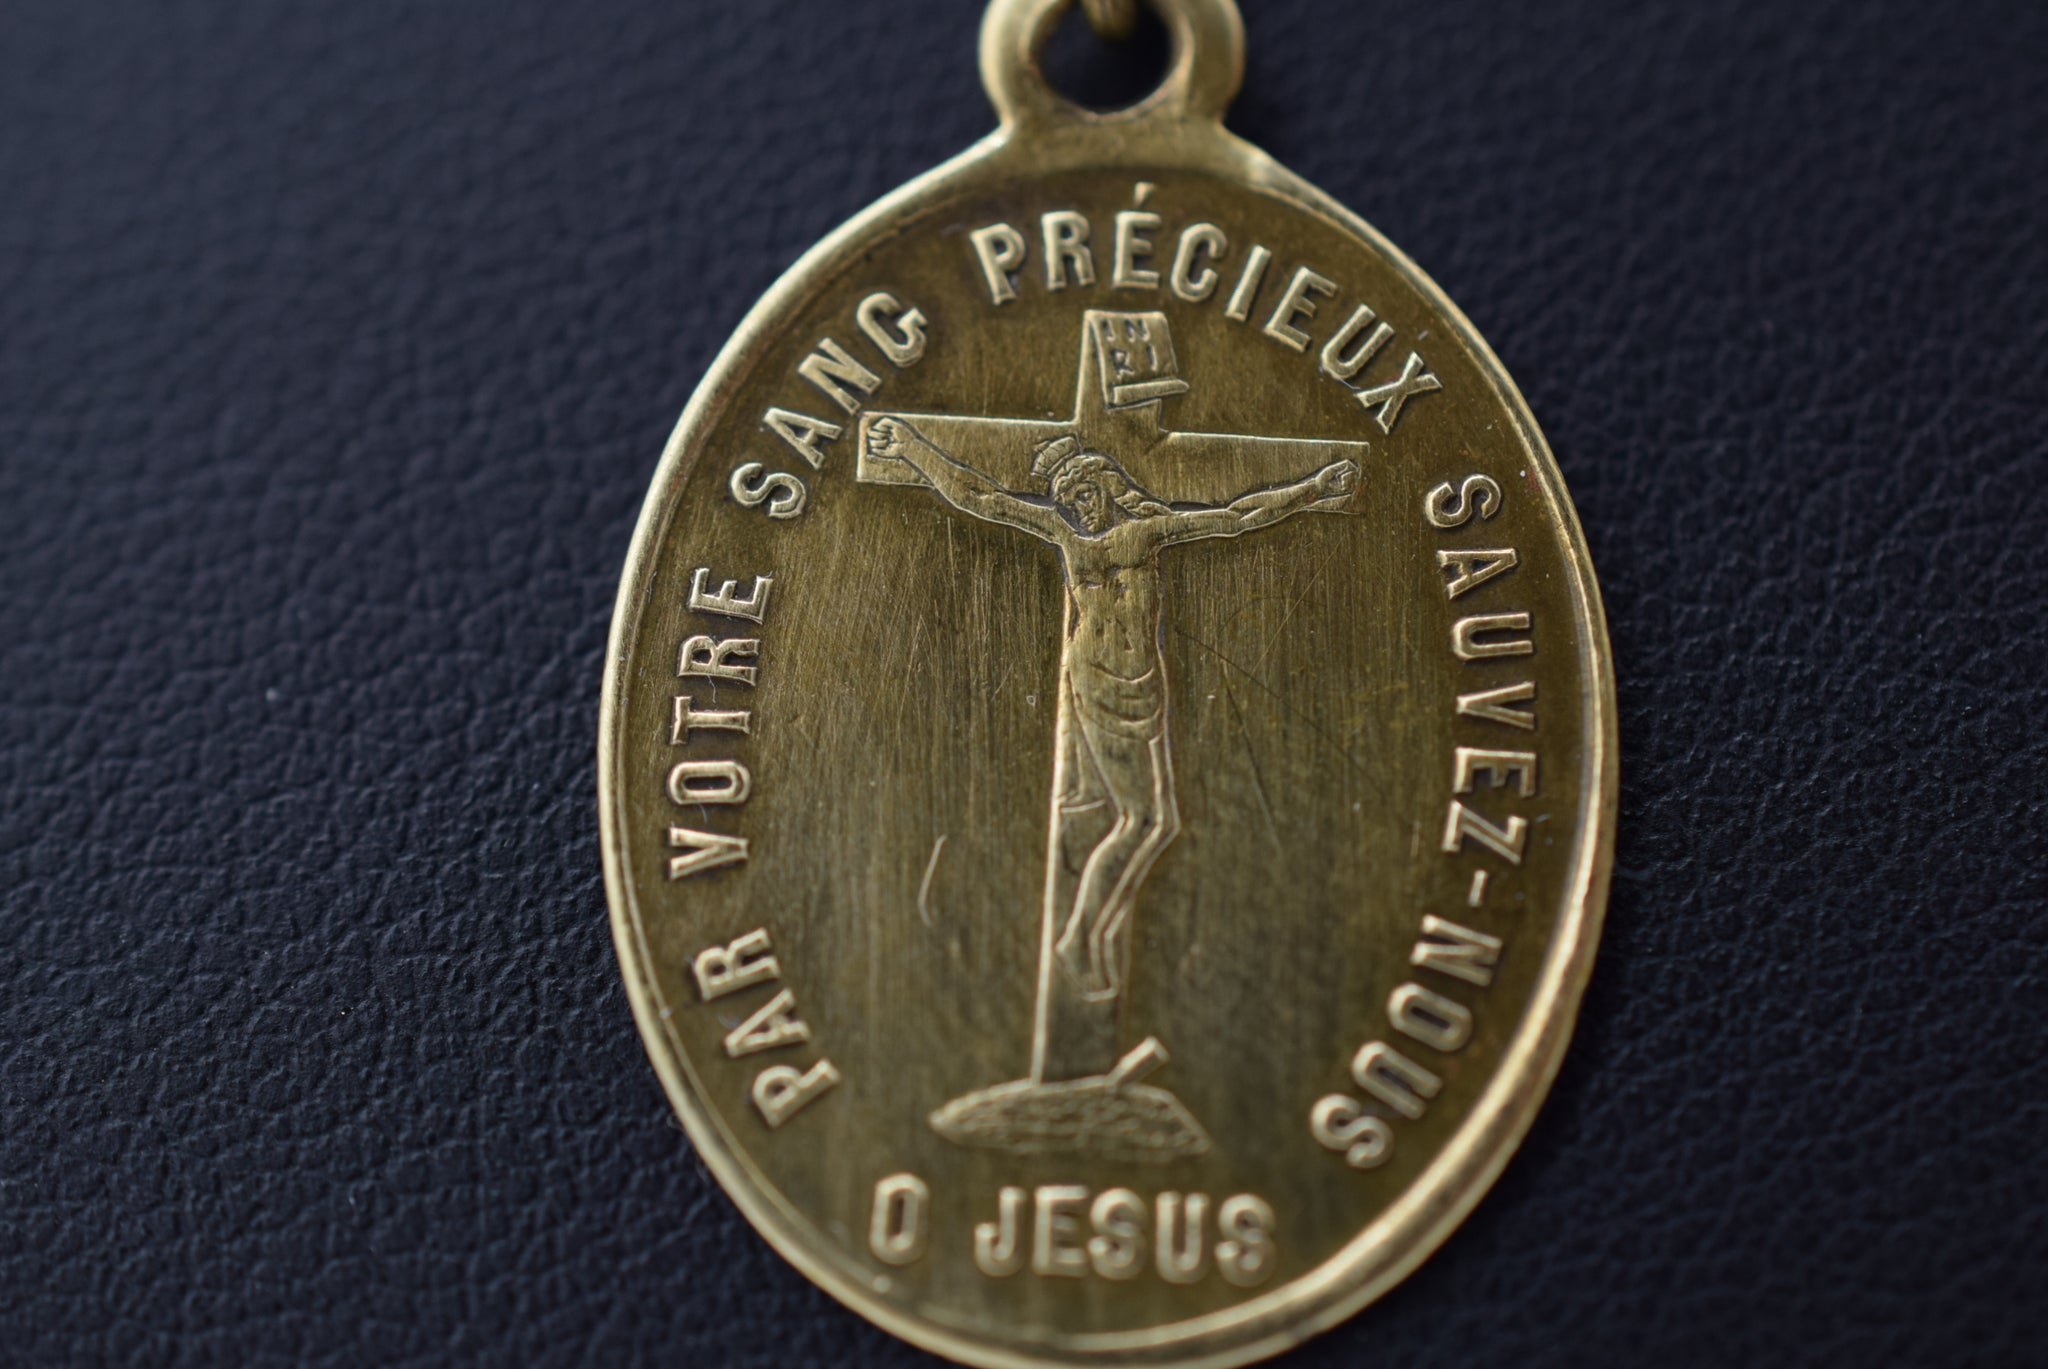 Holy Blood of Jesus Medal